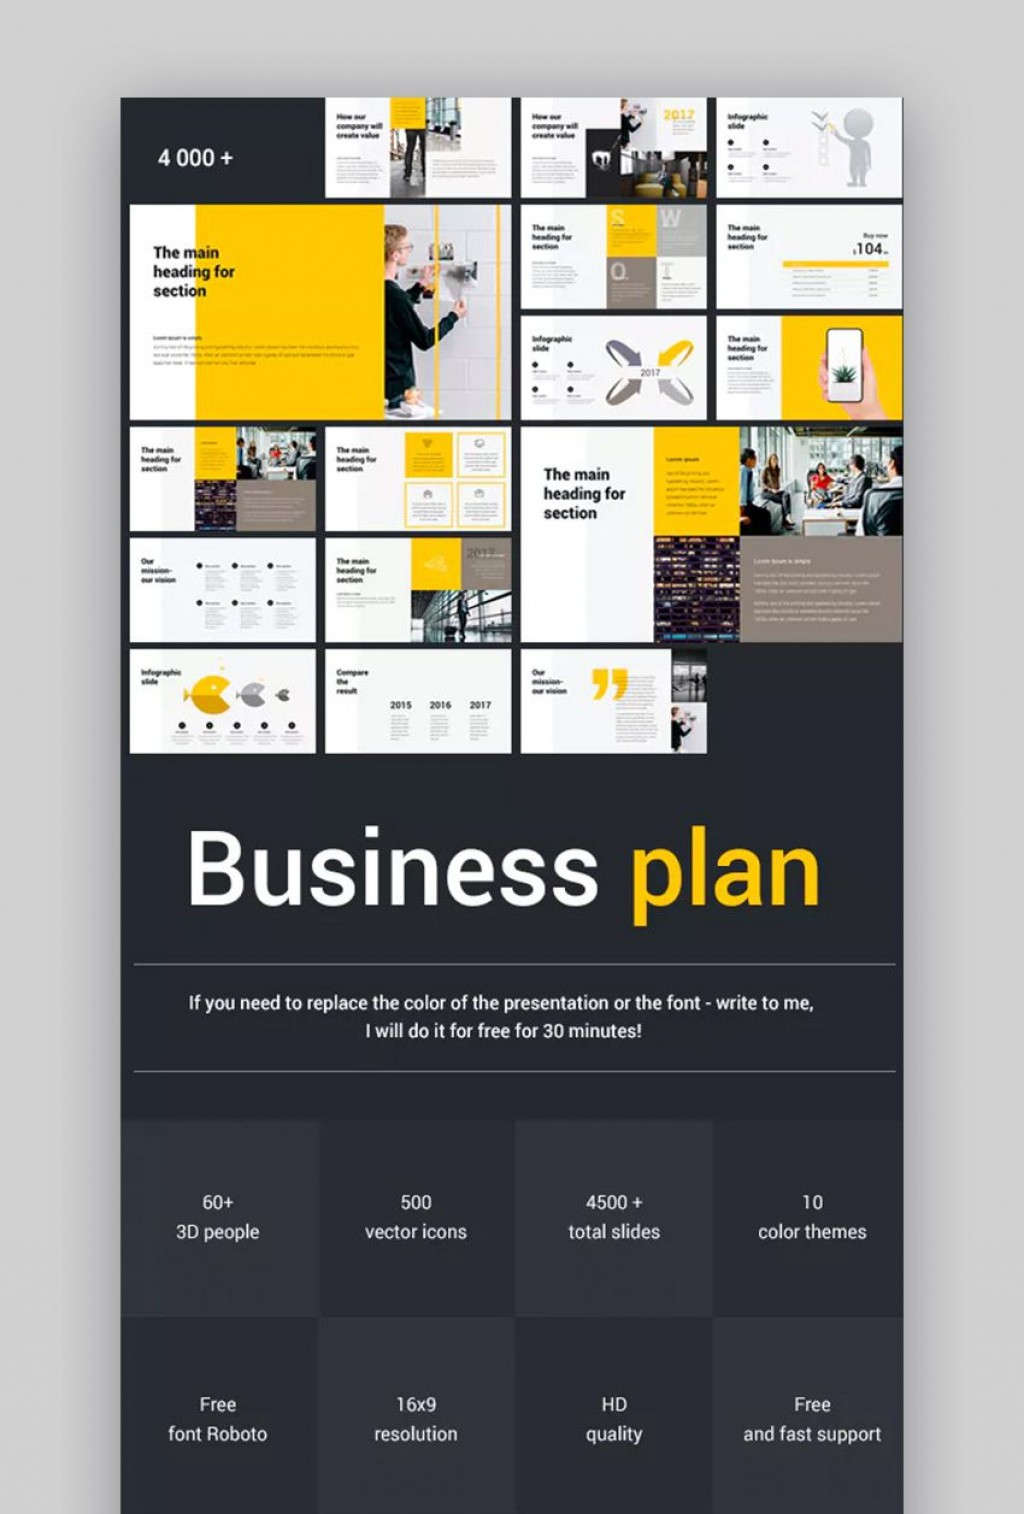 003 Staggering Free Busines Proposal Template Powerpoint Photo  Best Plan Ppt 2020 SaleLarge